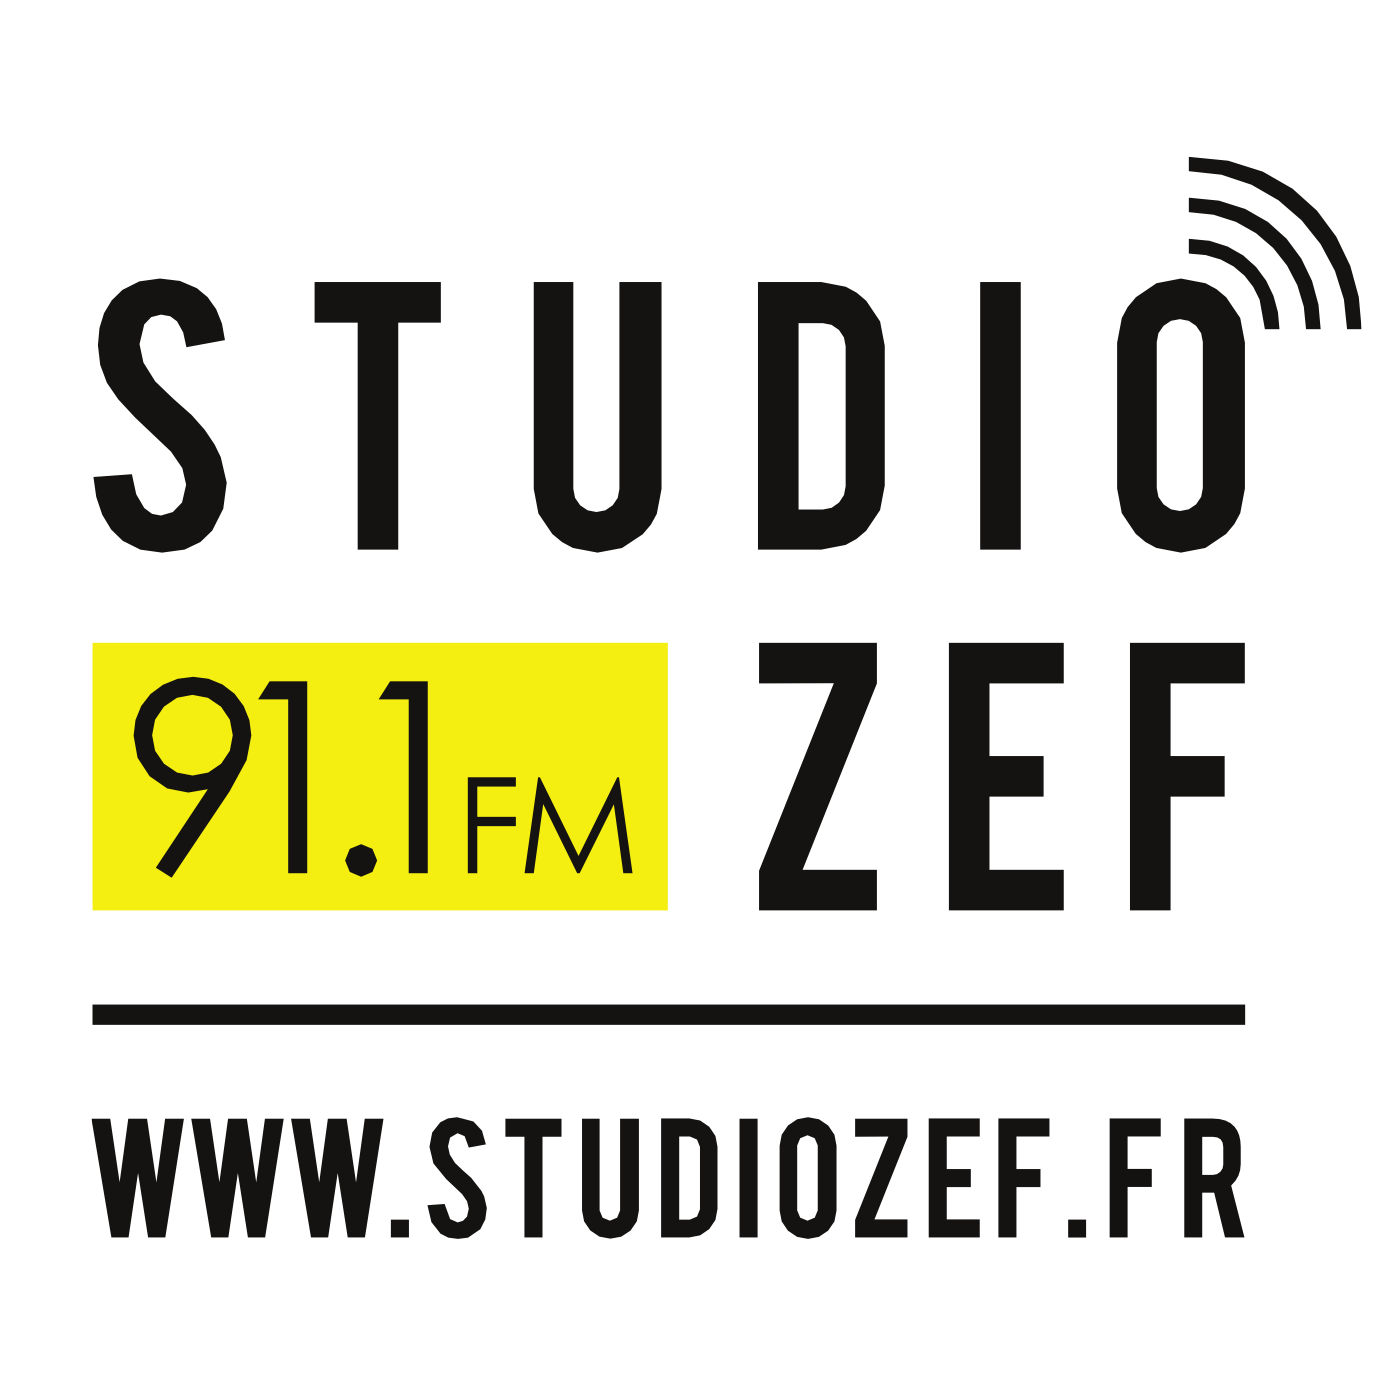 Quartier lointain | Studio Zef